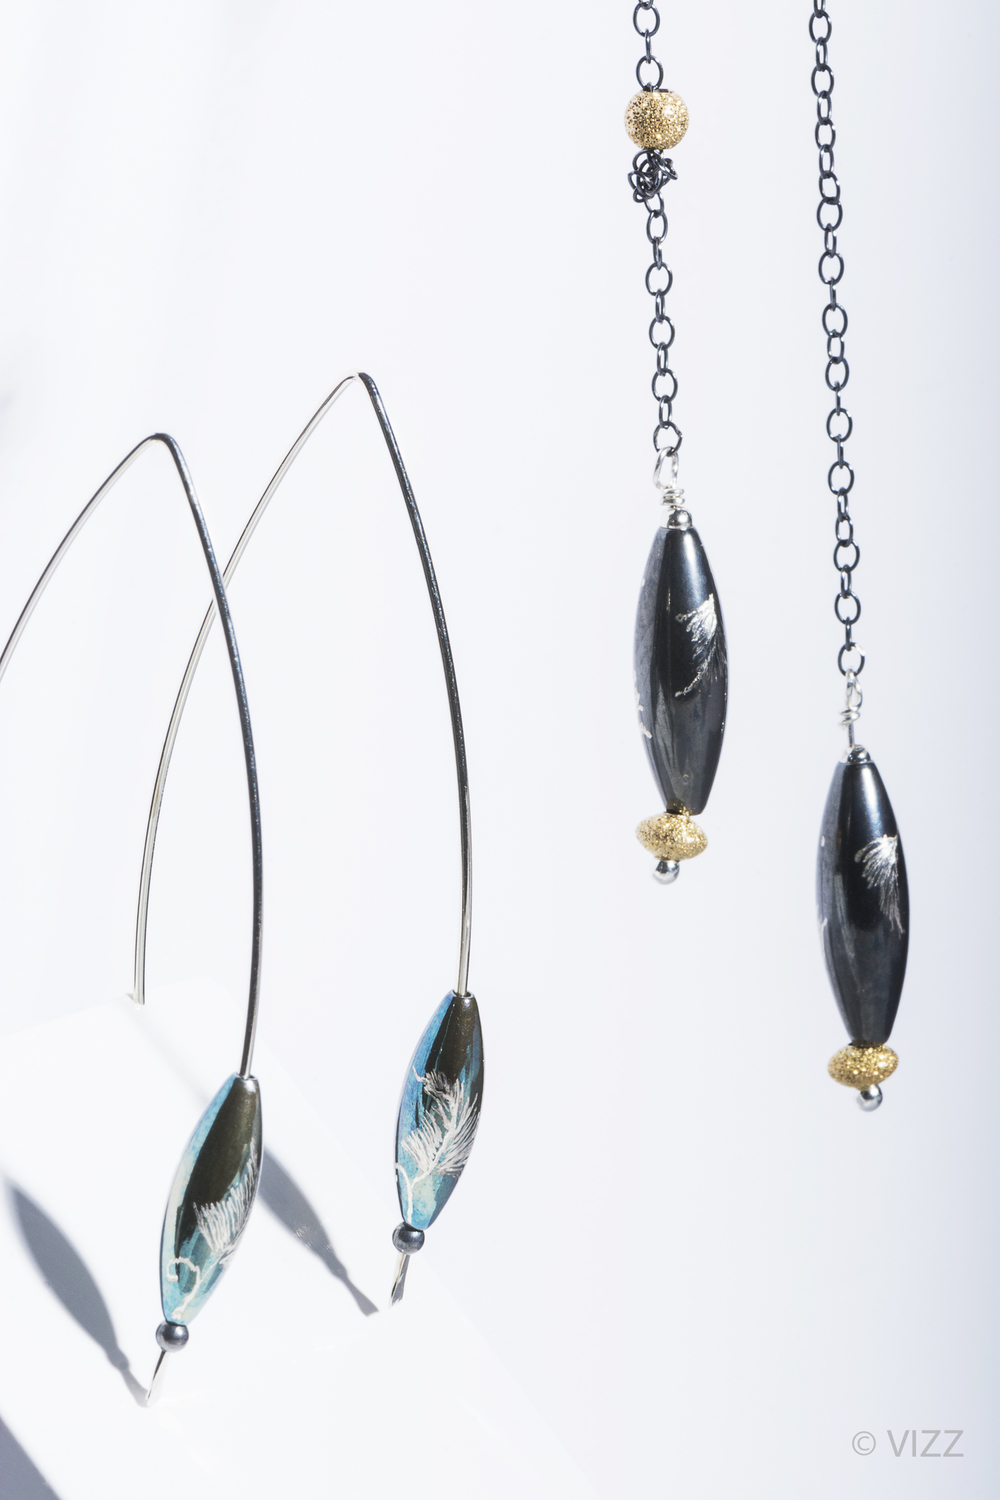 Nuala Lynch - Jewellery